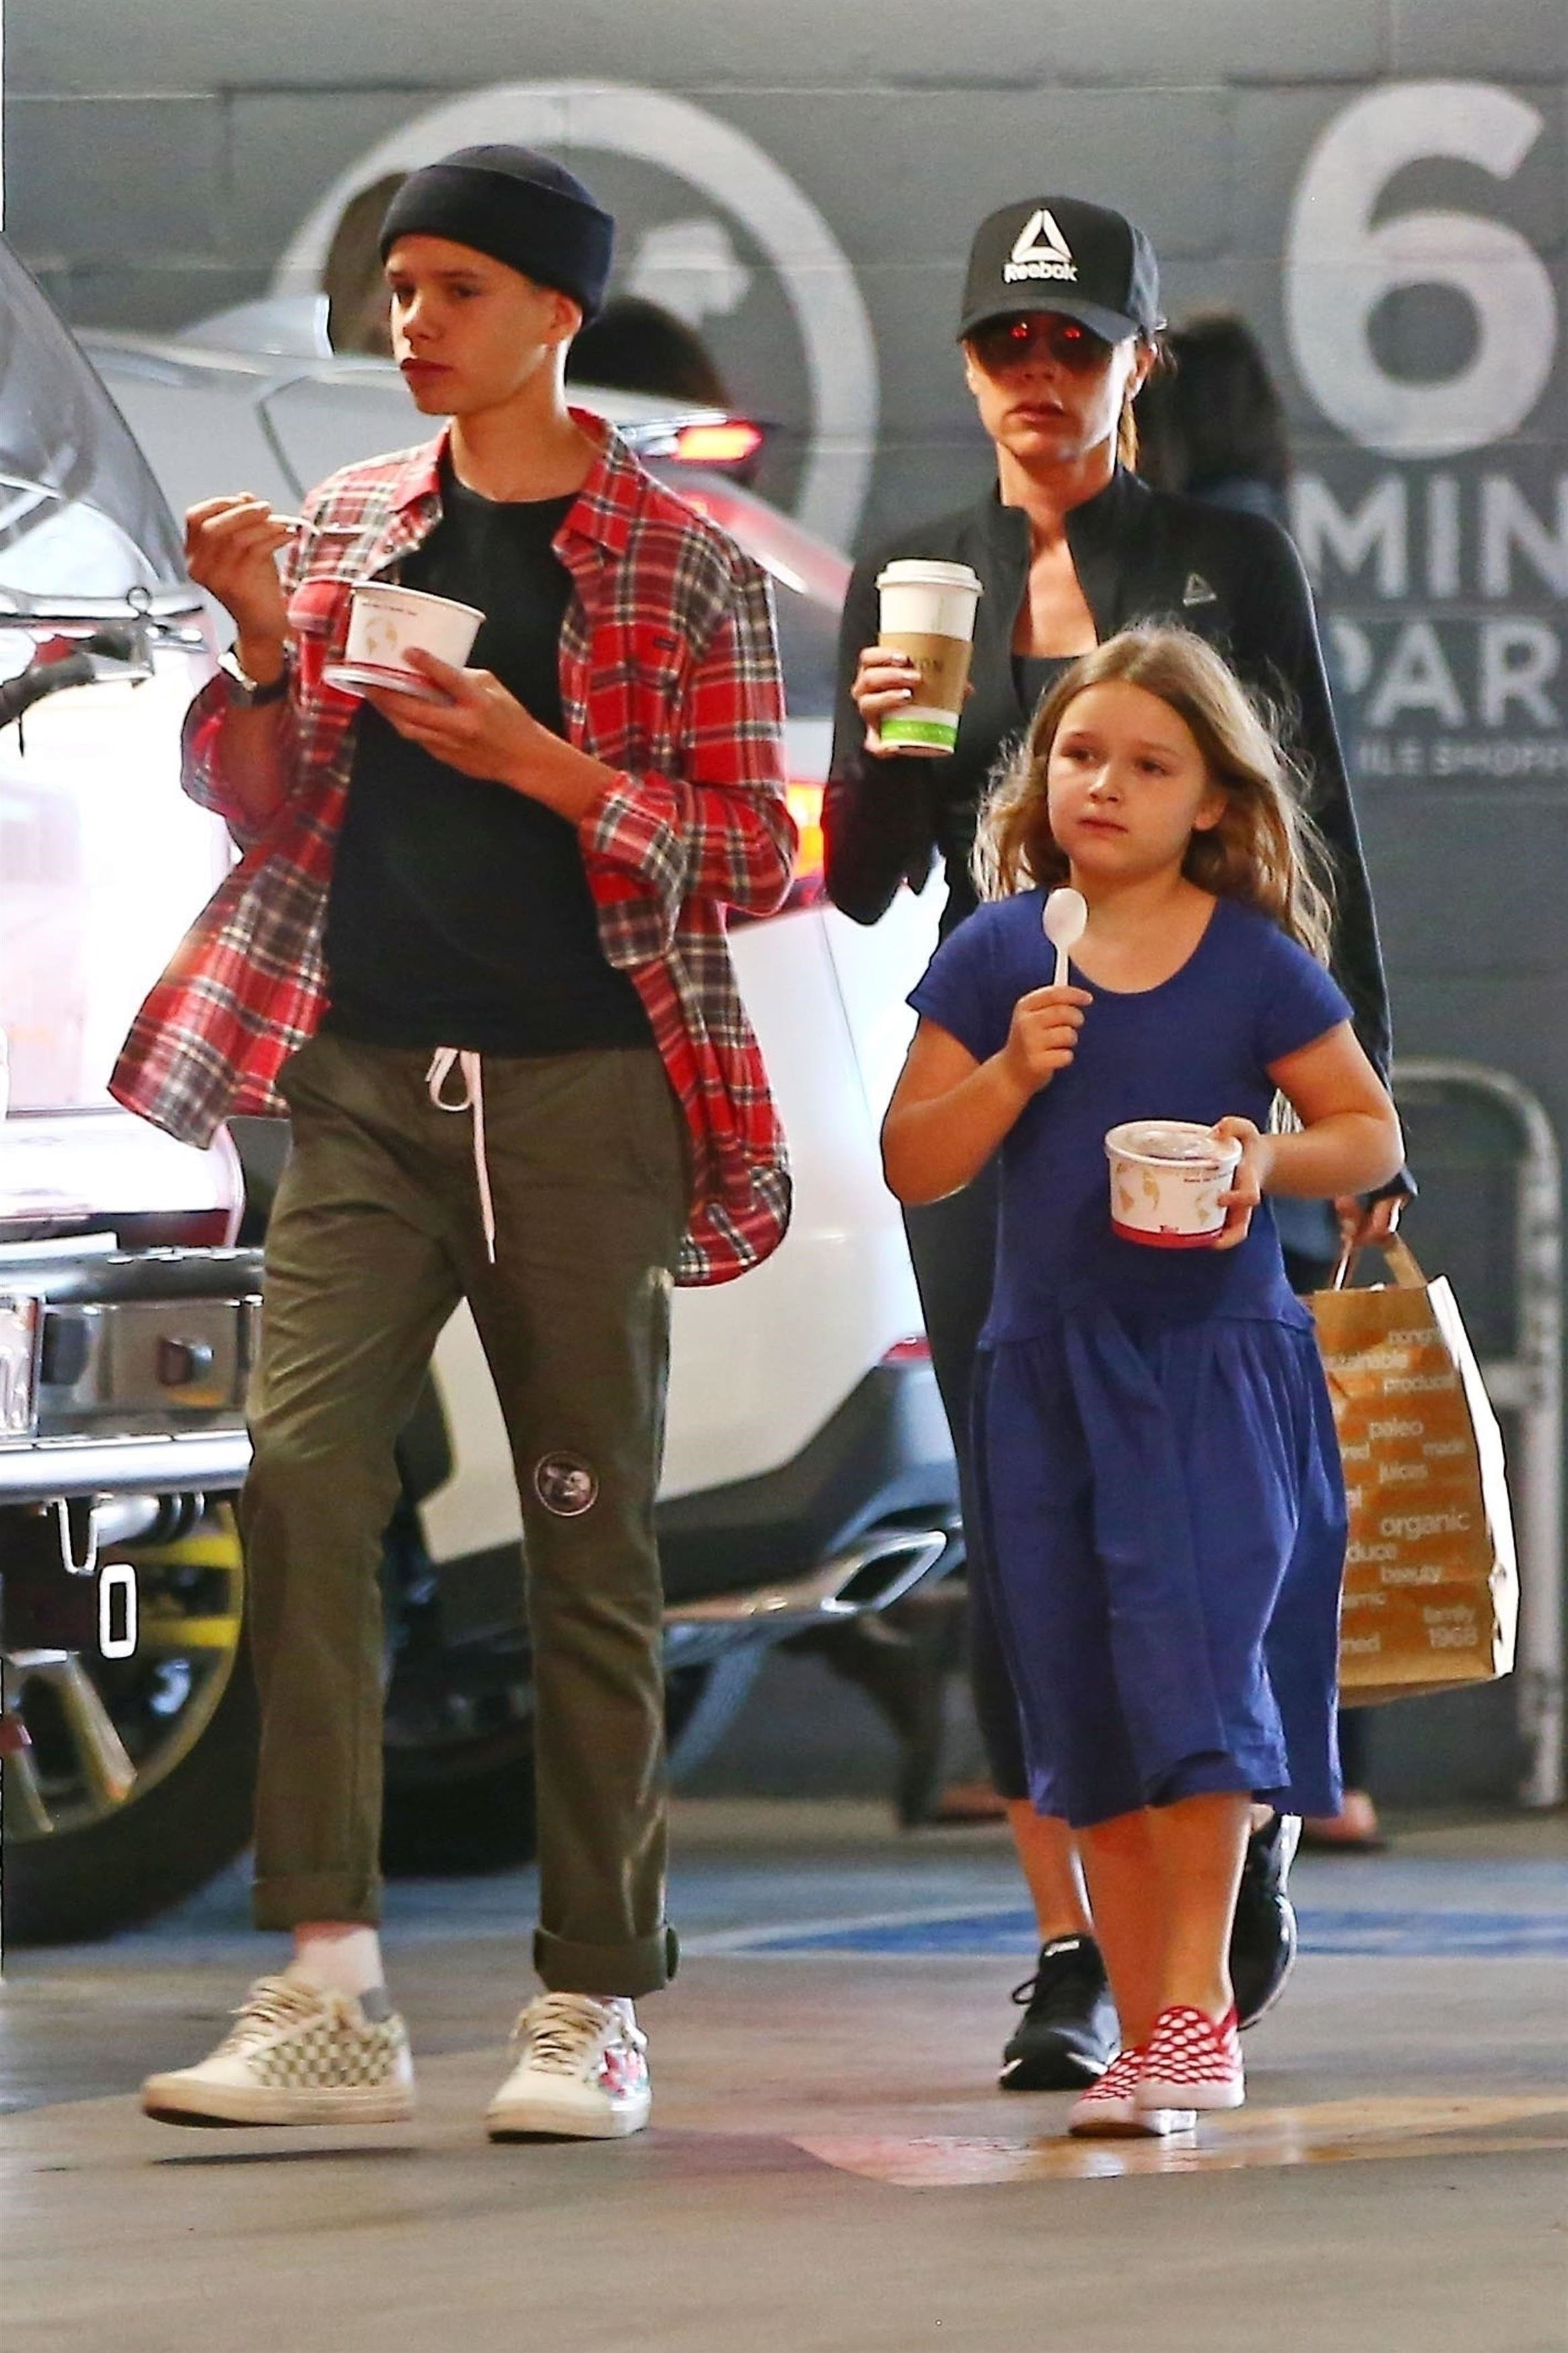 *EXCLUSIVE* ** RIGHTS: WORLDWIDE EXCEPT IN UNITED KINGDOM ** Los Angeles, CA  - Victoria Beckham takes her kids Brooklyn, Romeo, Cruz and Harper grocery shopping at Erewhon in Los Angeles. Victoria, who turned 44 yesterday, was still wearing her black gym outfit as she bought her kids some ice cream. The svelte fashion designer skipped the sweet treat in favor of some coffee.  Pictured: Victoria Beckham, Romeo Beckham, Harper Beckham    *UK Clients - Pictures Containing Children Please Pixelate Face Prior To Publication*, Image: 369056017, License: Rights-managed, Restrictions: , Model Release: no, Credit line: Profimedia, AKM-GSI